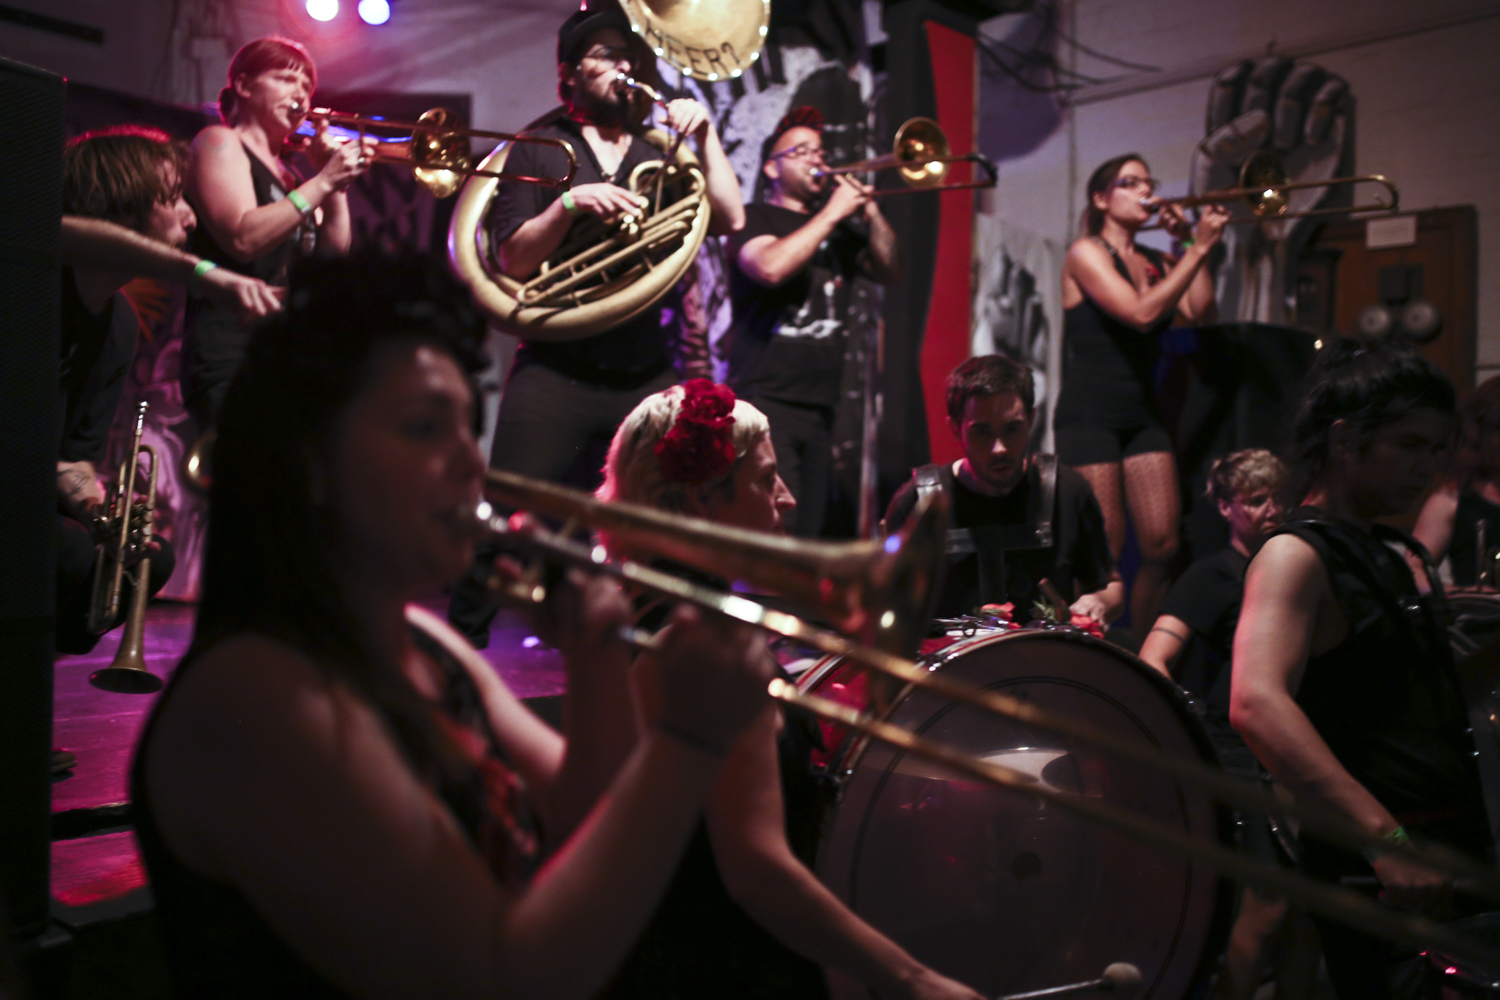 The WhatCheer Brigade performs on June 20, 2017, at Gallery 5 in Richmond, Va. [Photograph by Scott P. Yates]